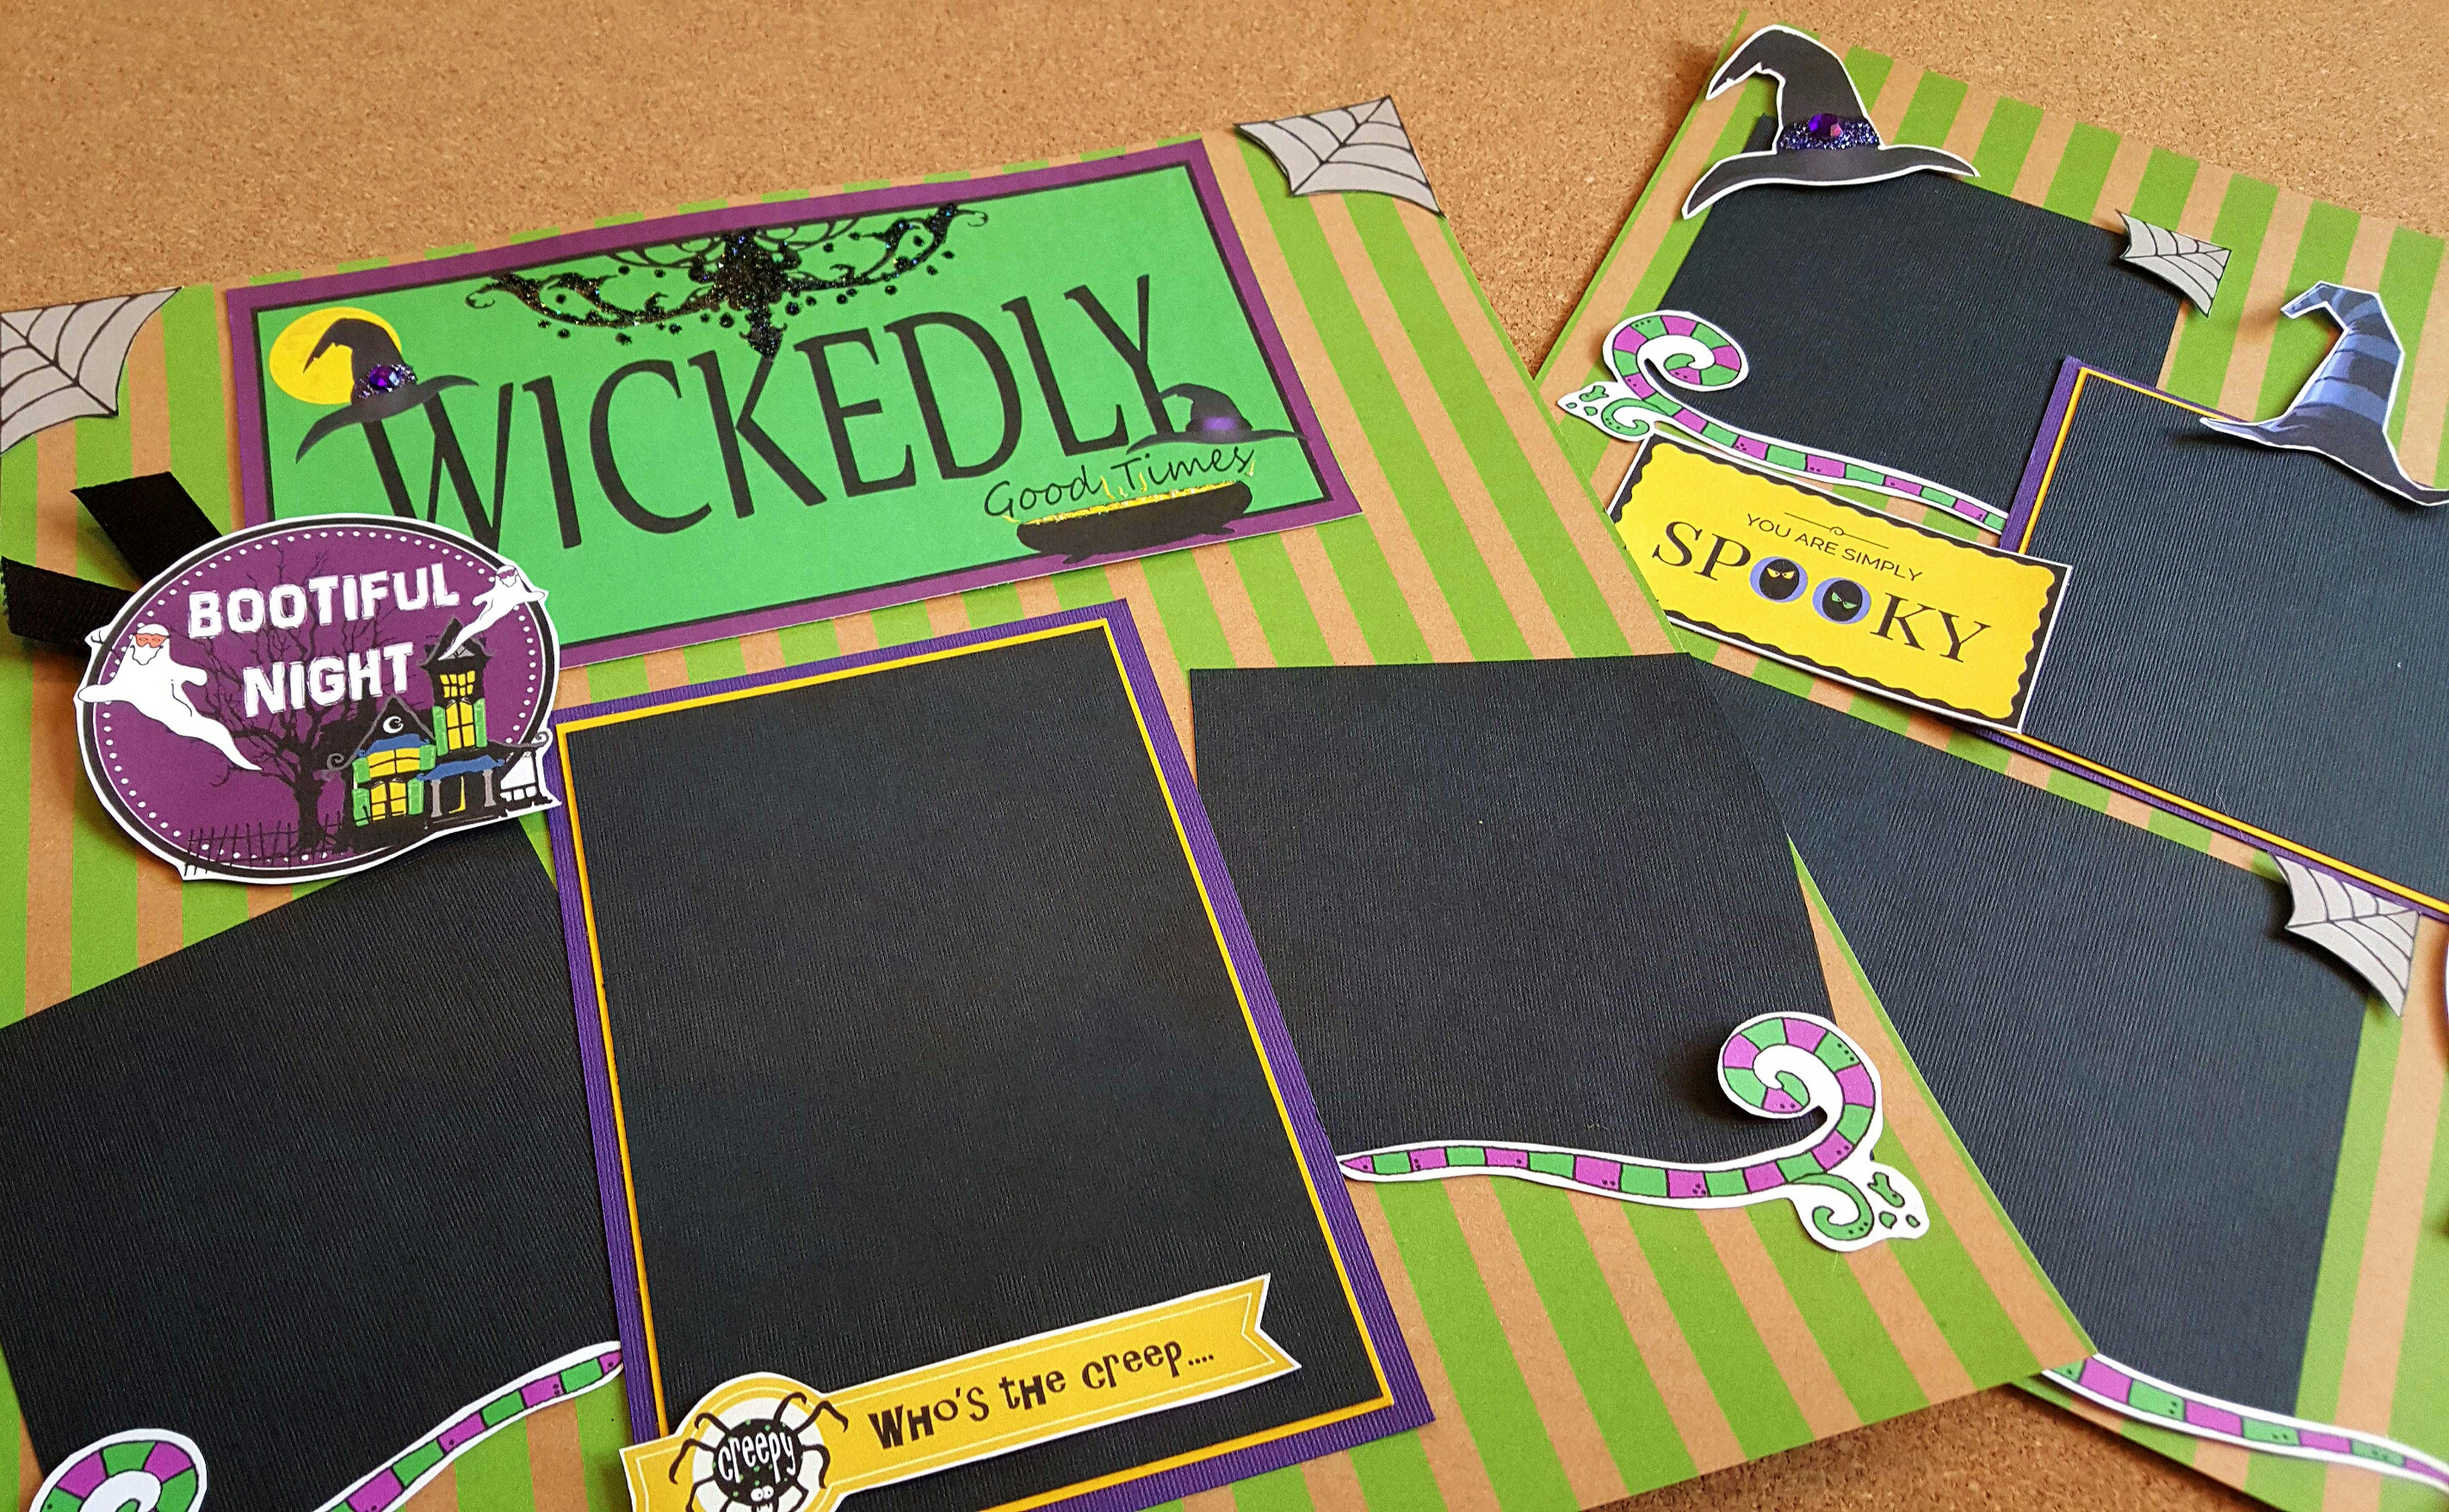 How to scrapbook good - Wickedly Good Times Halloween Scrapbook Pages